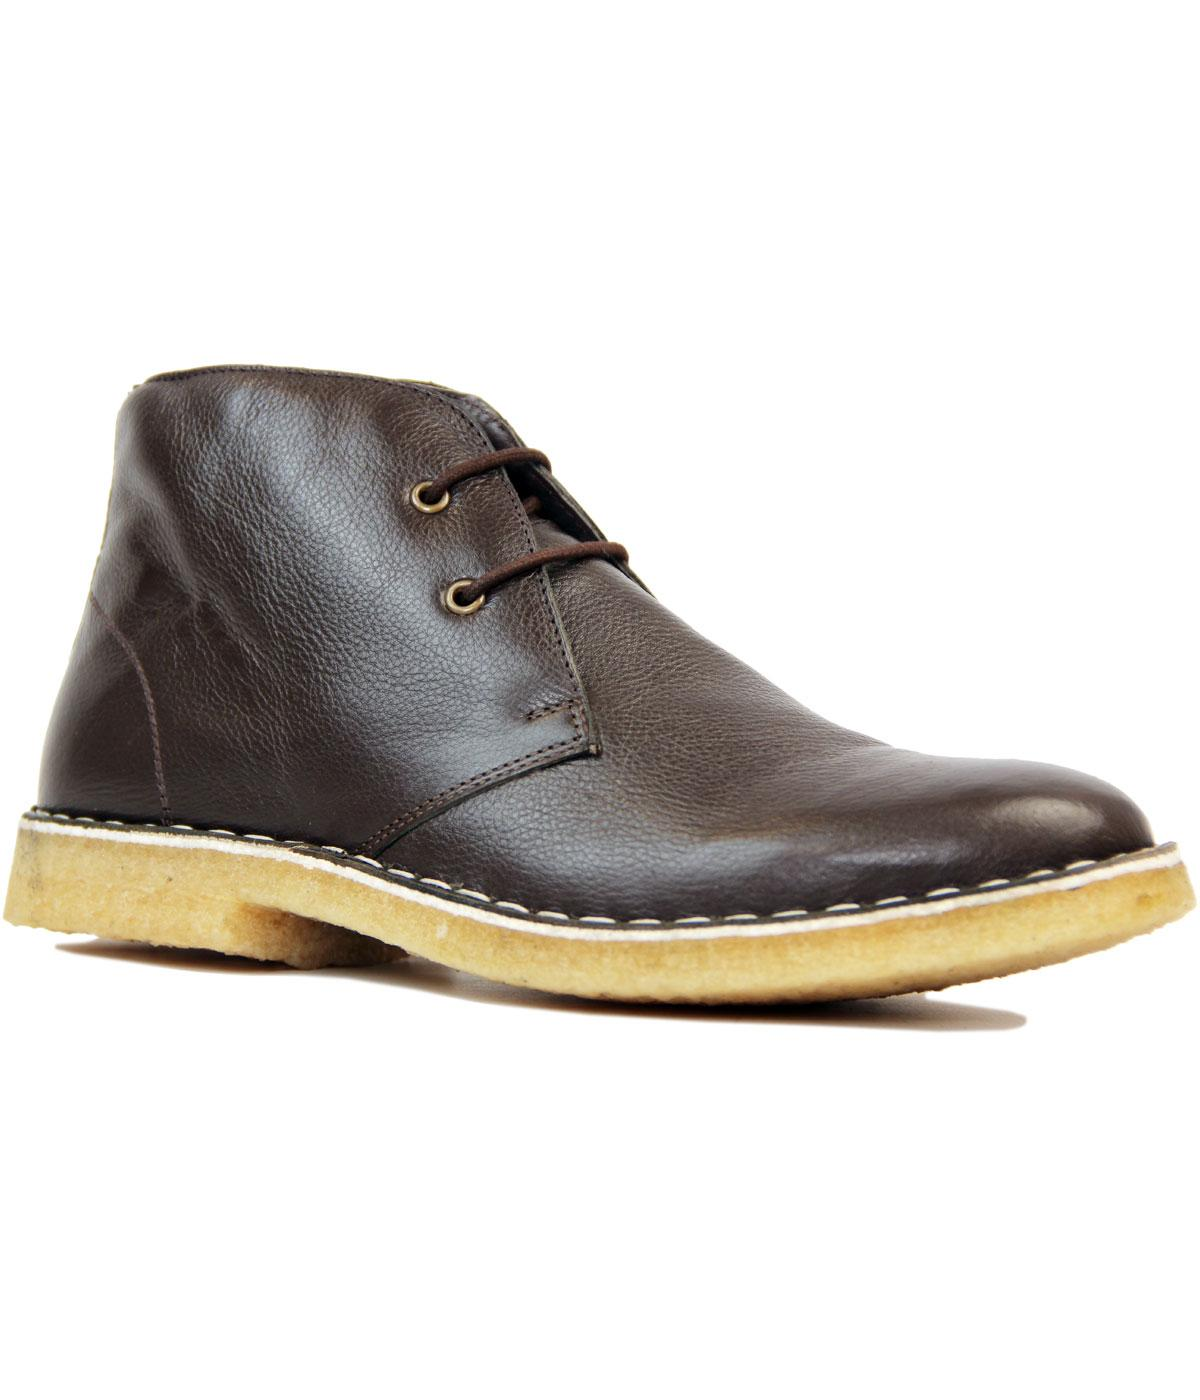 Netherfield PAOLO VANDINI Mod Leather Desert Boots